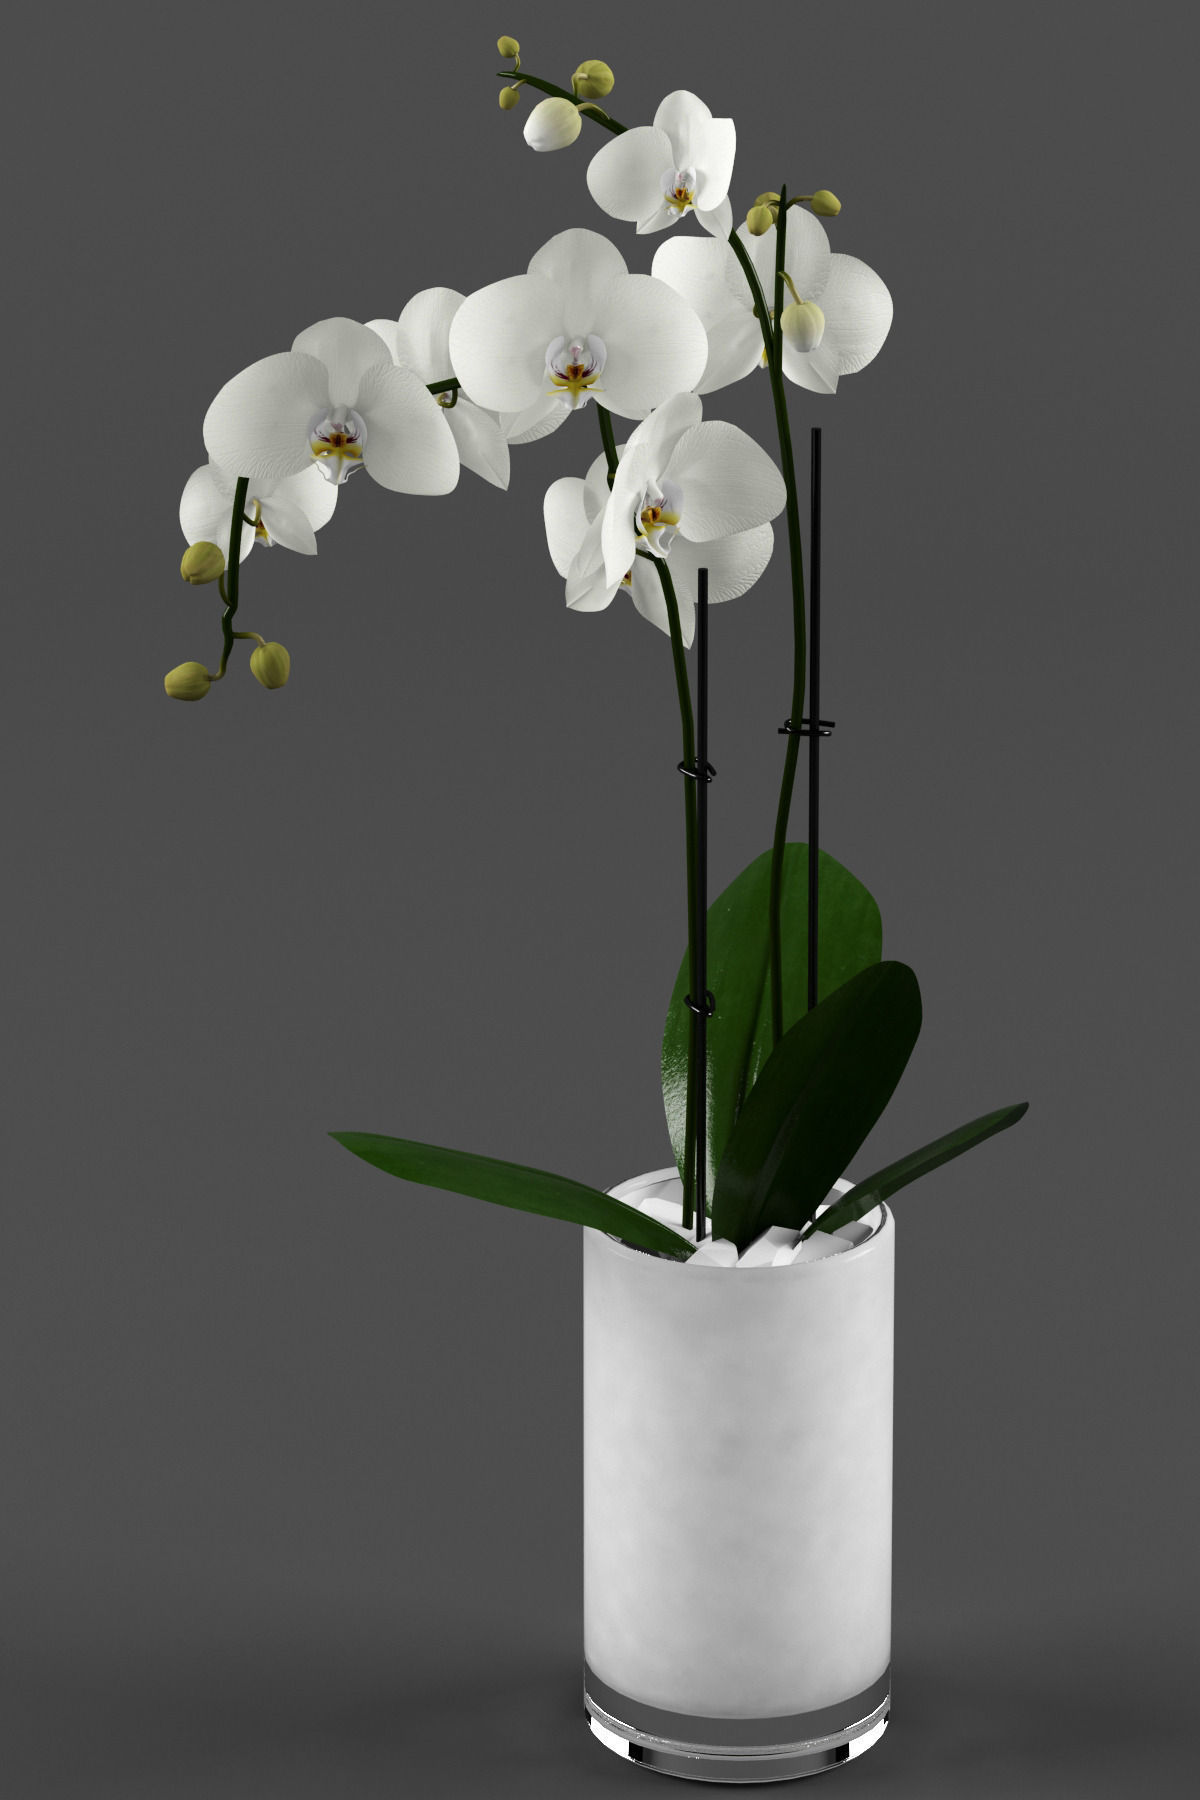 White Orchid In Glass Pot With Stones 3d Model Max